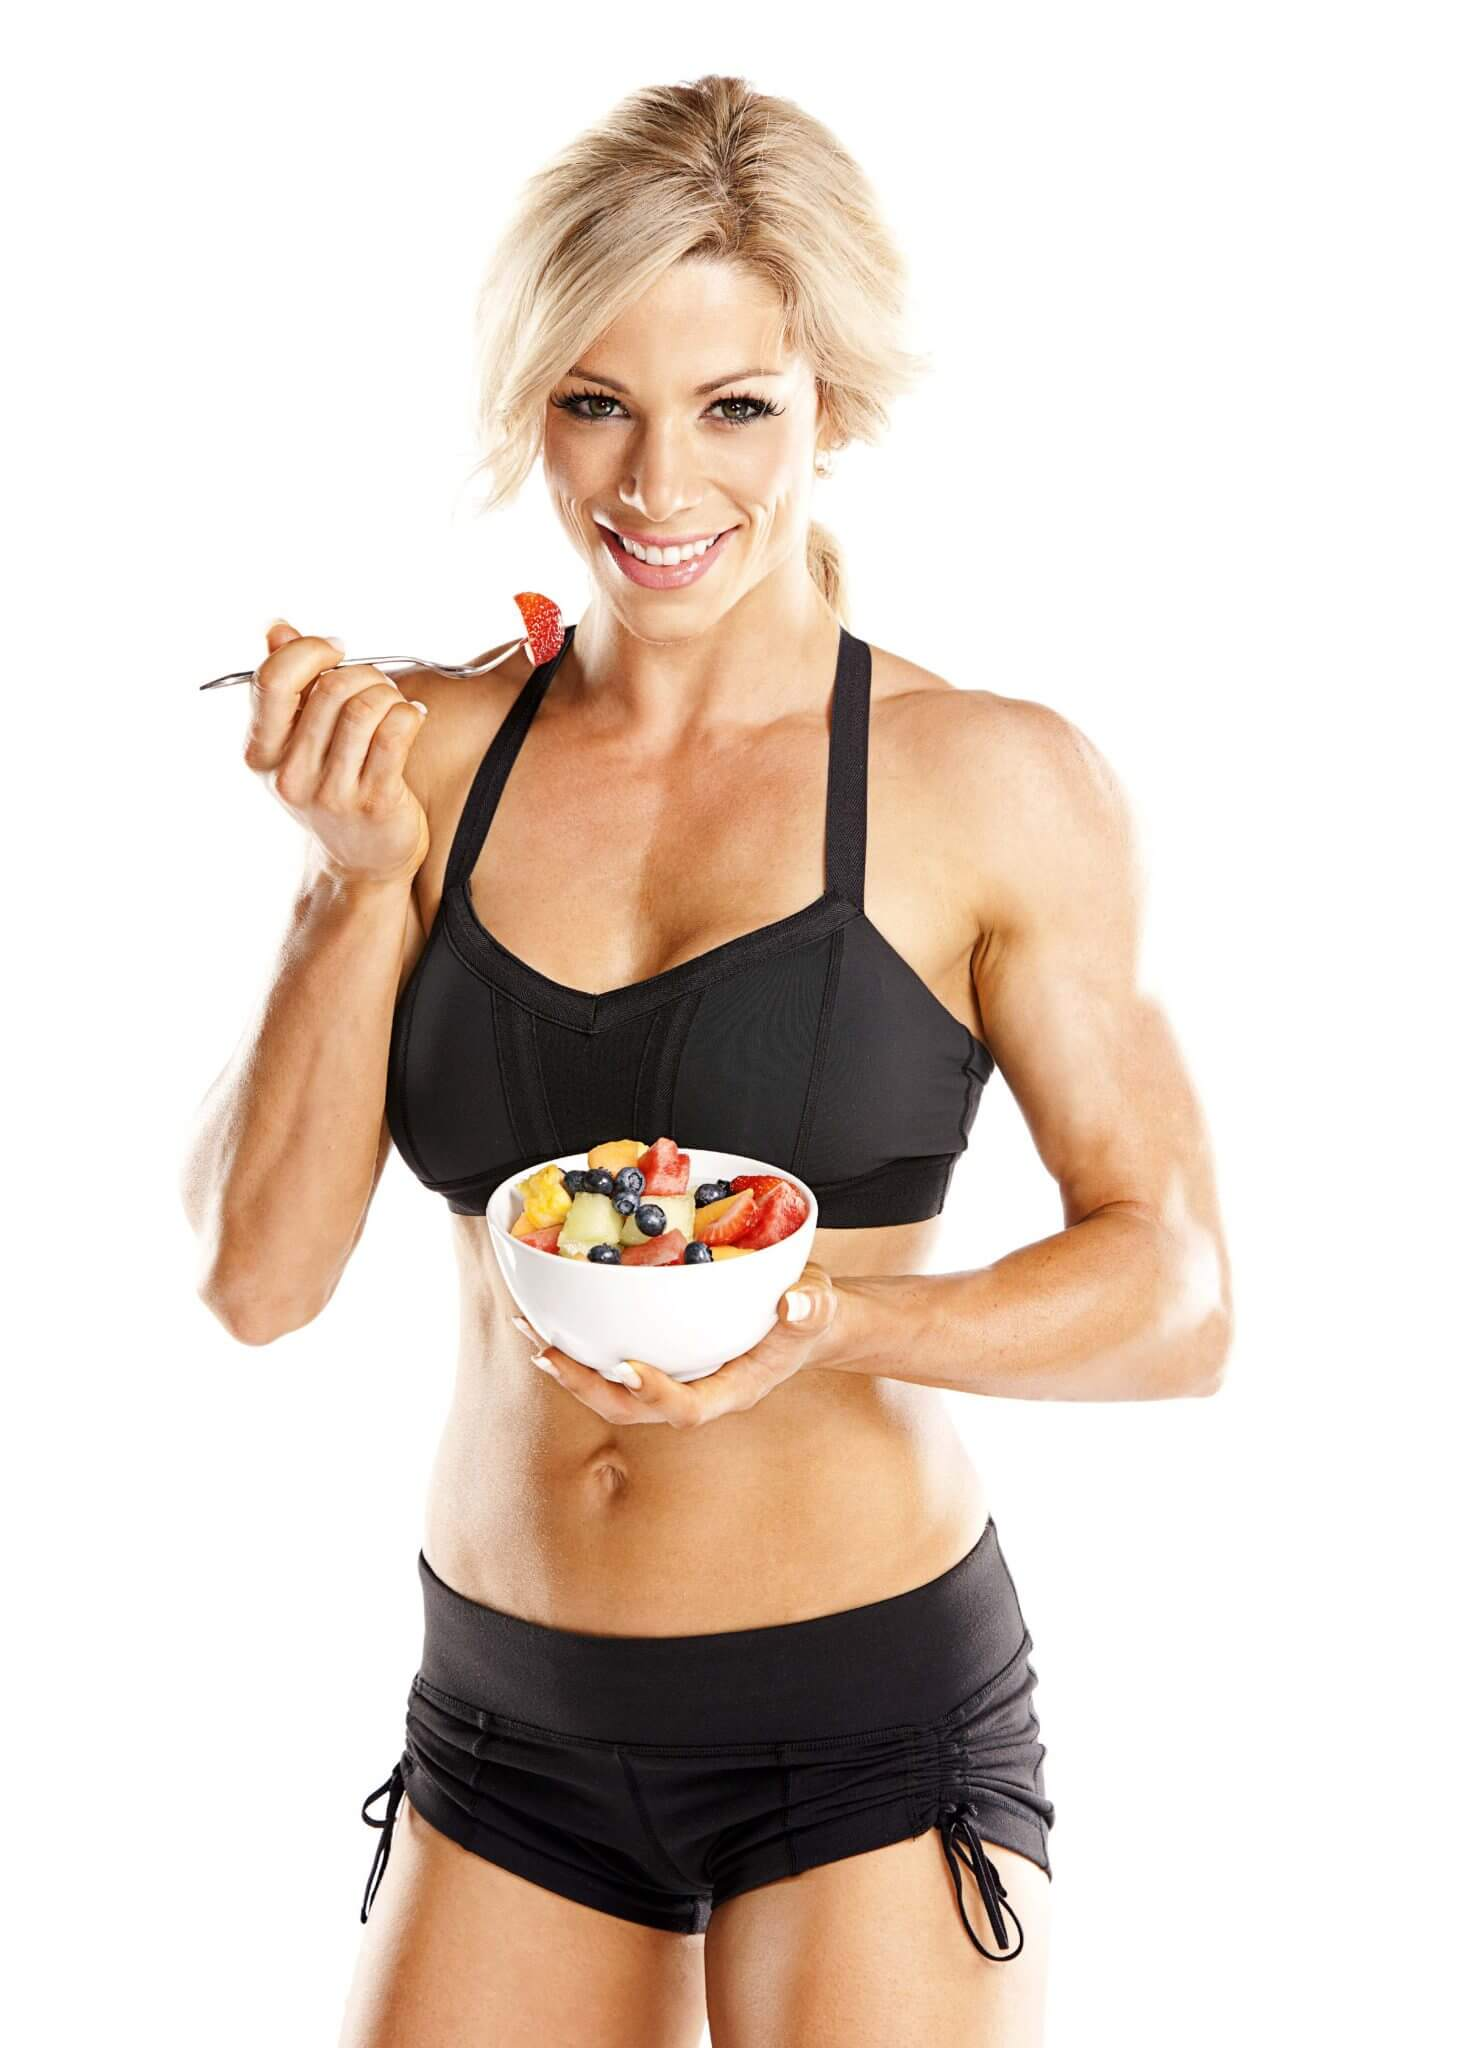 Weight loss diet for ectomorphs